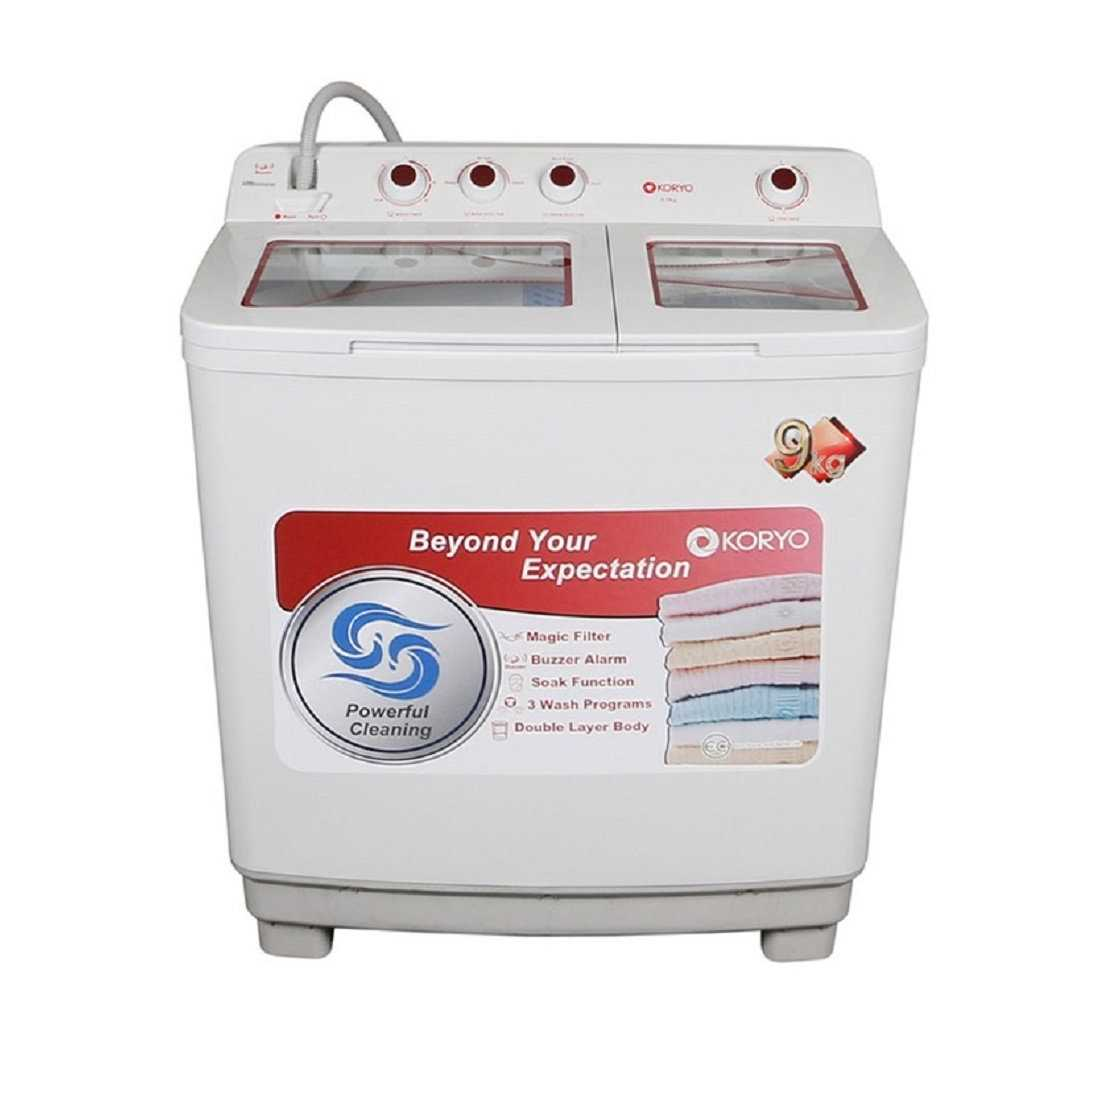 Koryo KWM9017SA 9 Kg Semi Automatic Top Loading Washing Machine